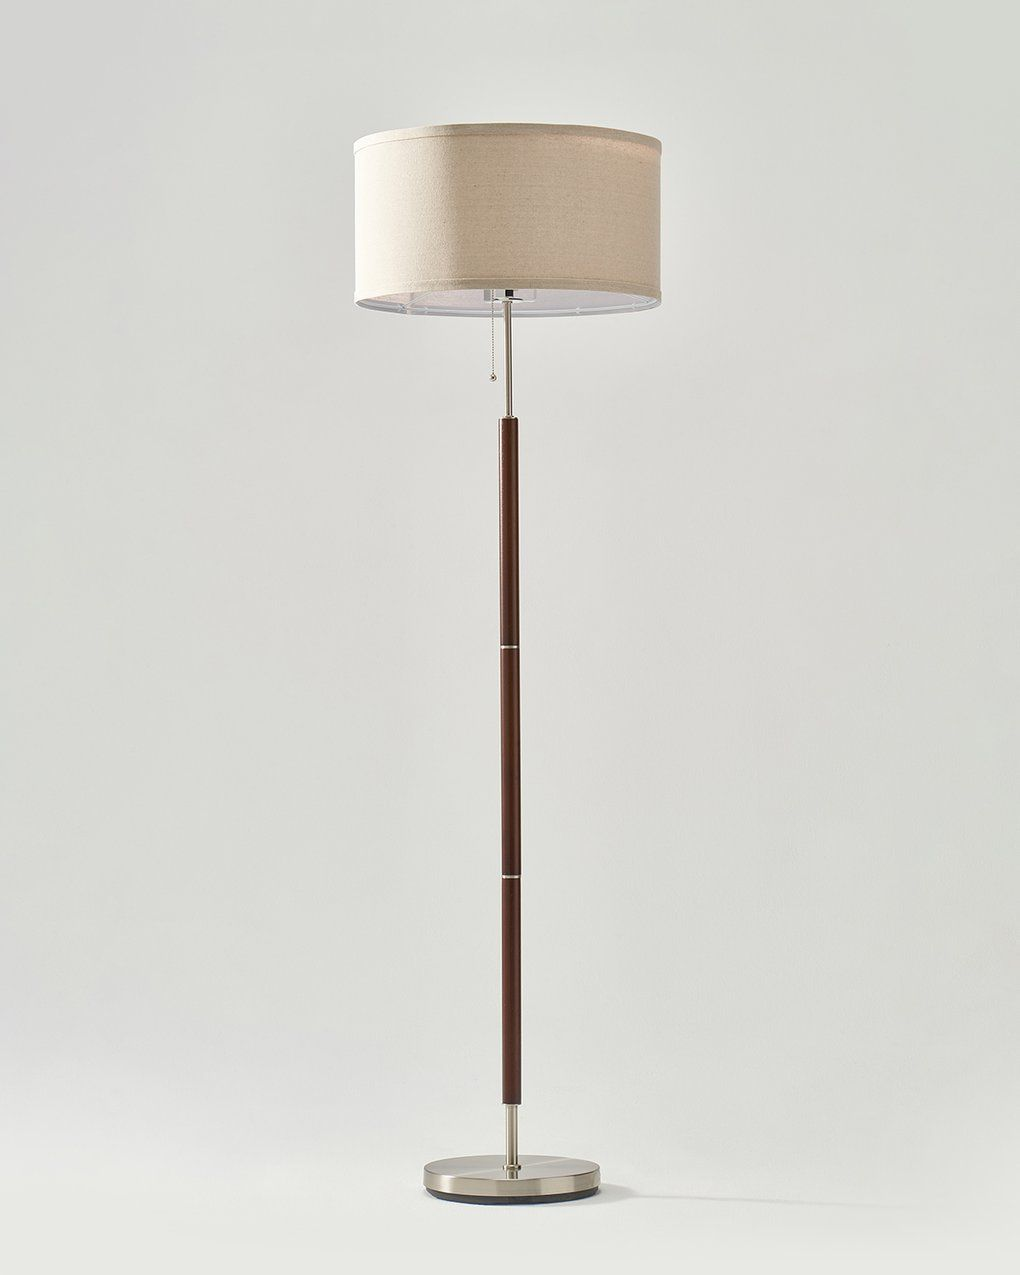 Carter Floor Lamp In 2020 Stylish Floor Lamp Modern Floor Lamps Floor Lamp Design